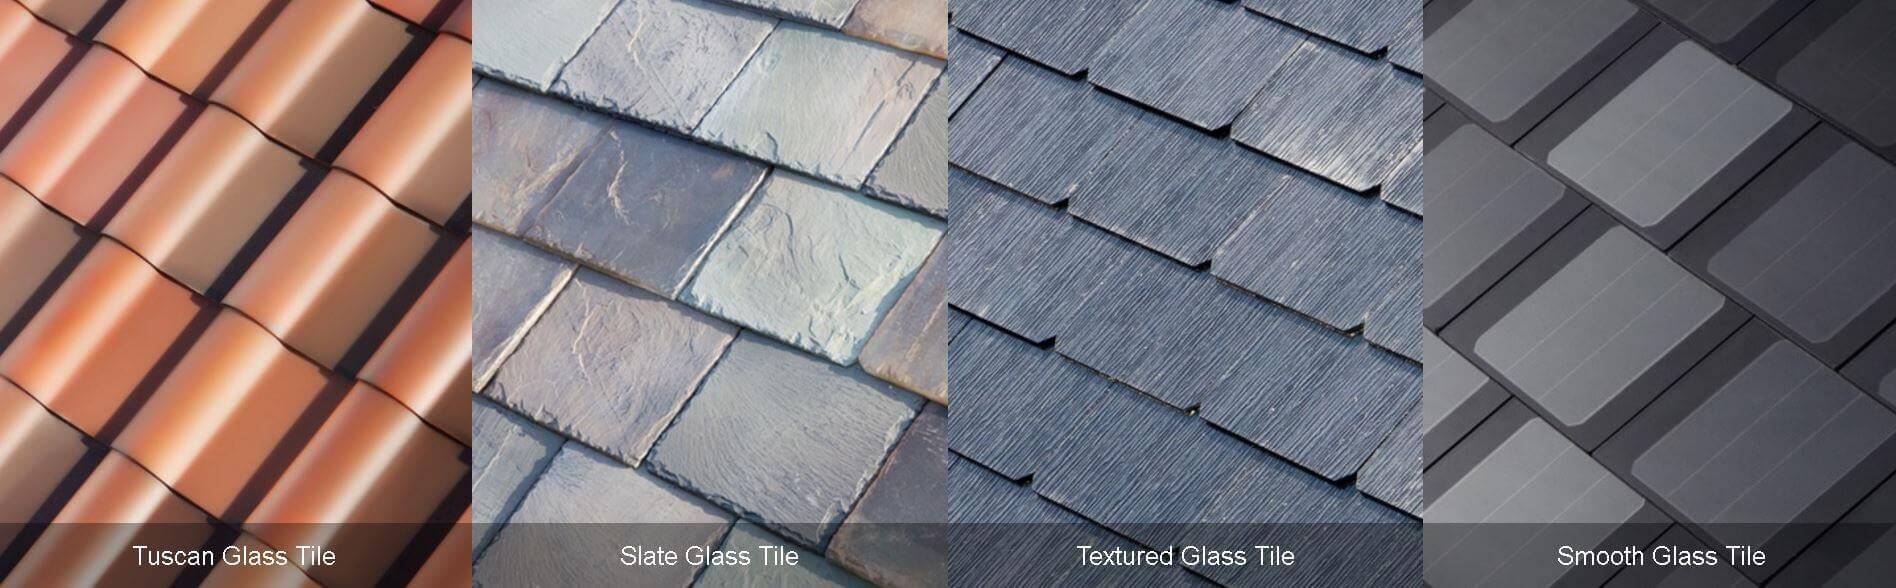 The styles of Tesla glass solar roof you can choose from